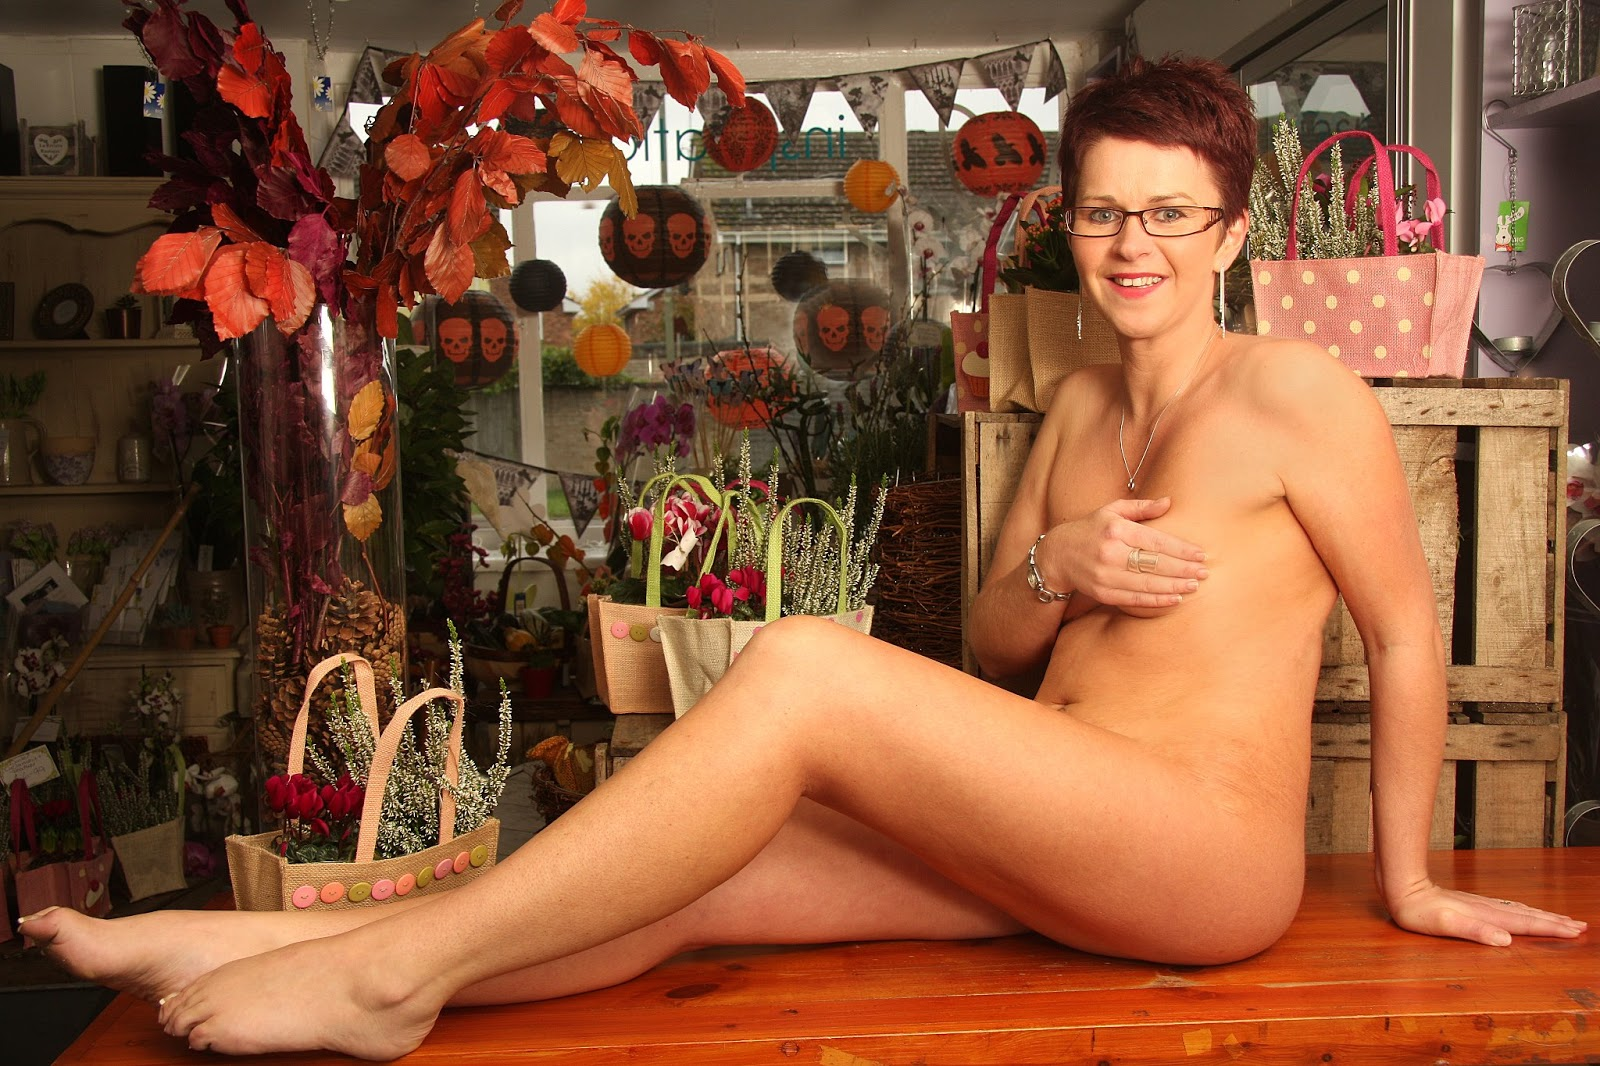 nude calendar ladies letdown has